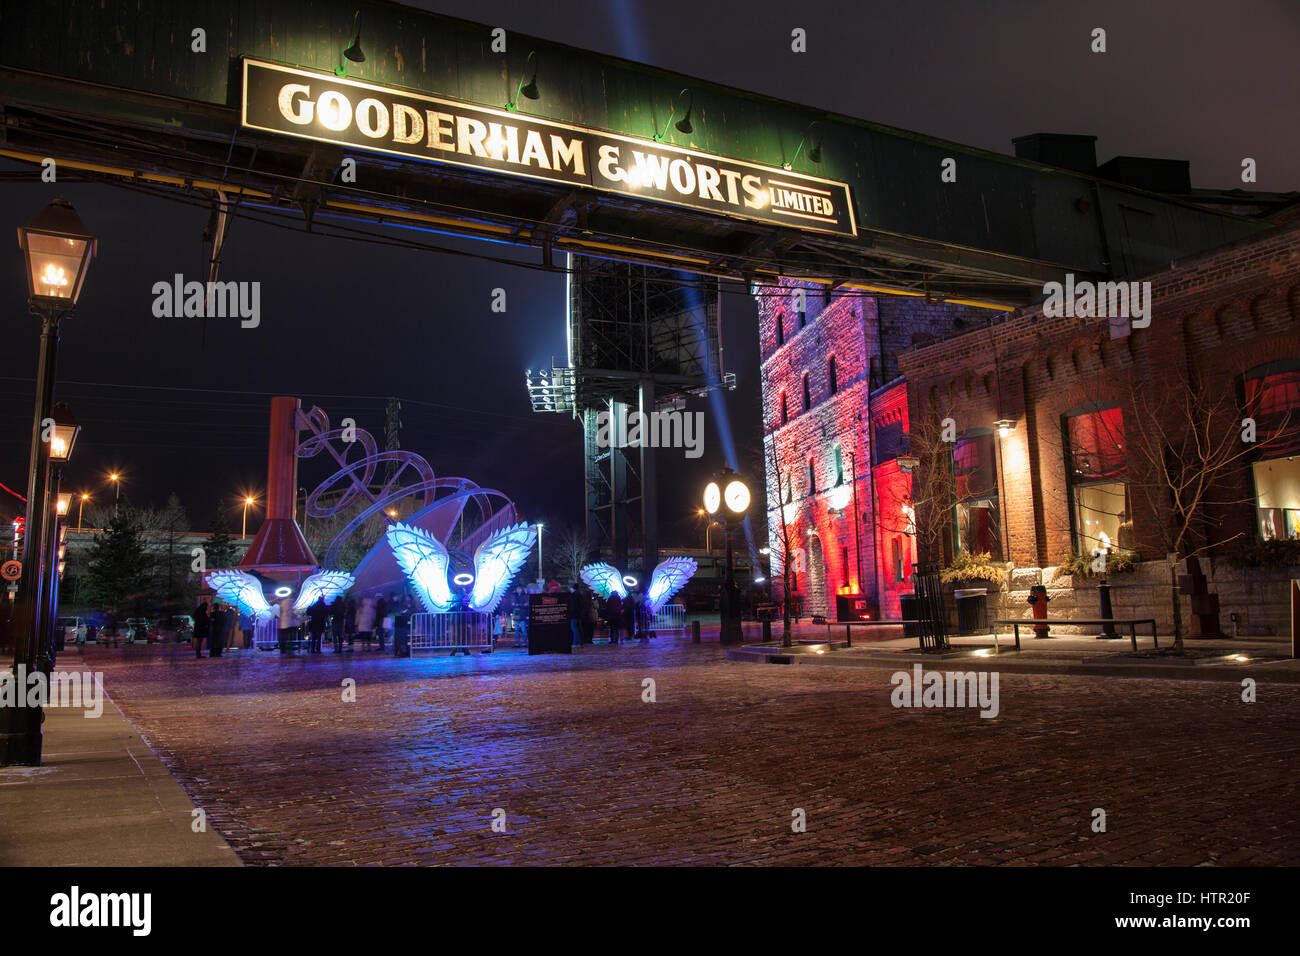 TORONTO- MARCH 12, 2017: The Toronto Light Fest is an annual event that showcases the artwork of various artists - Stock Image